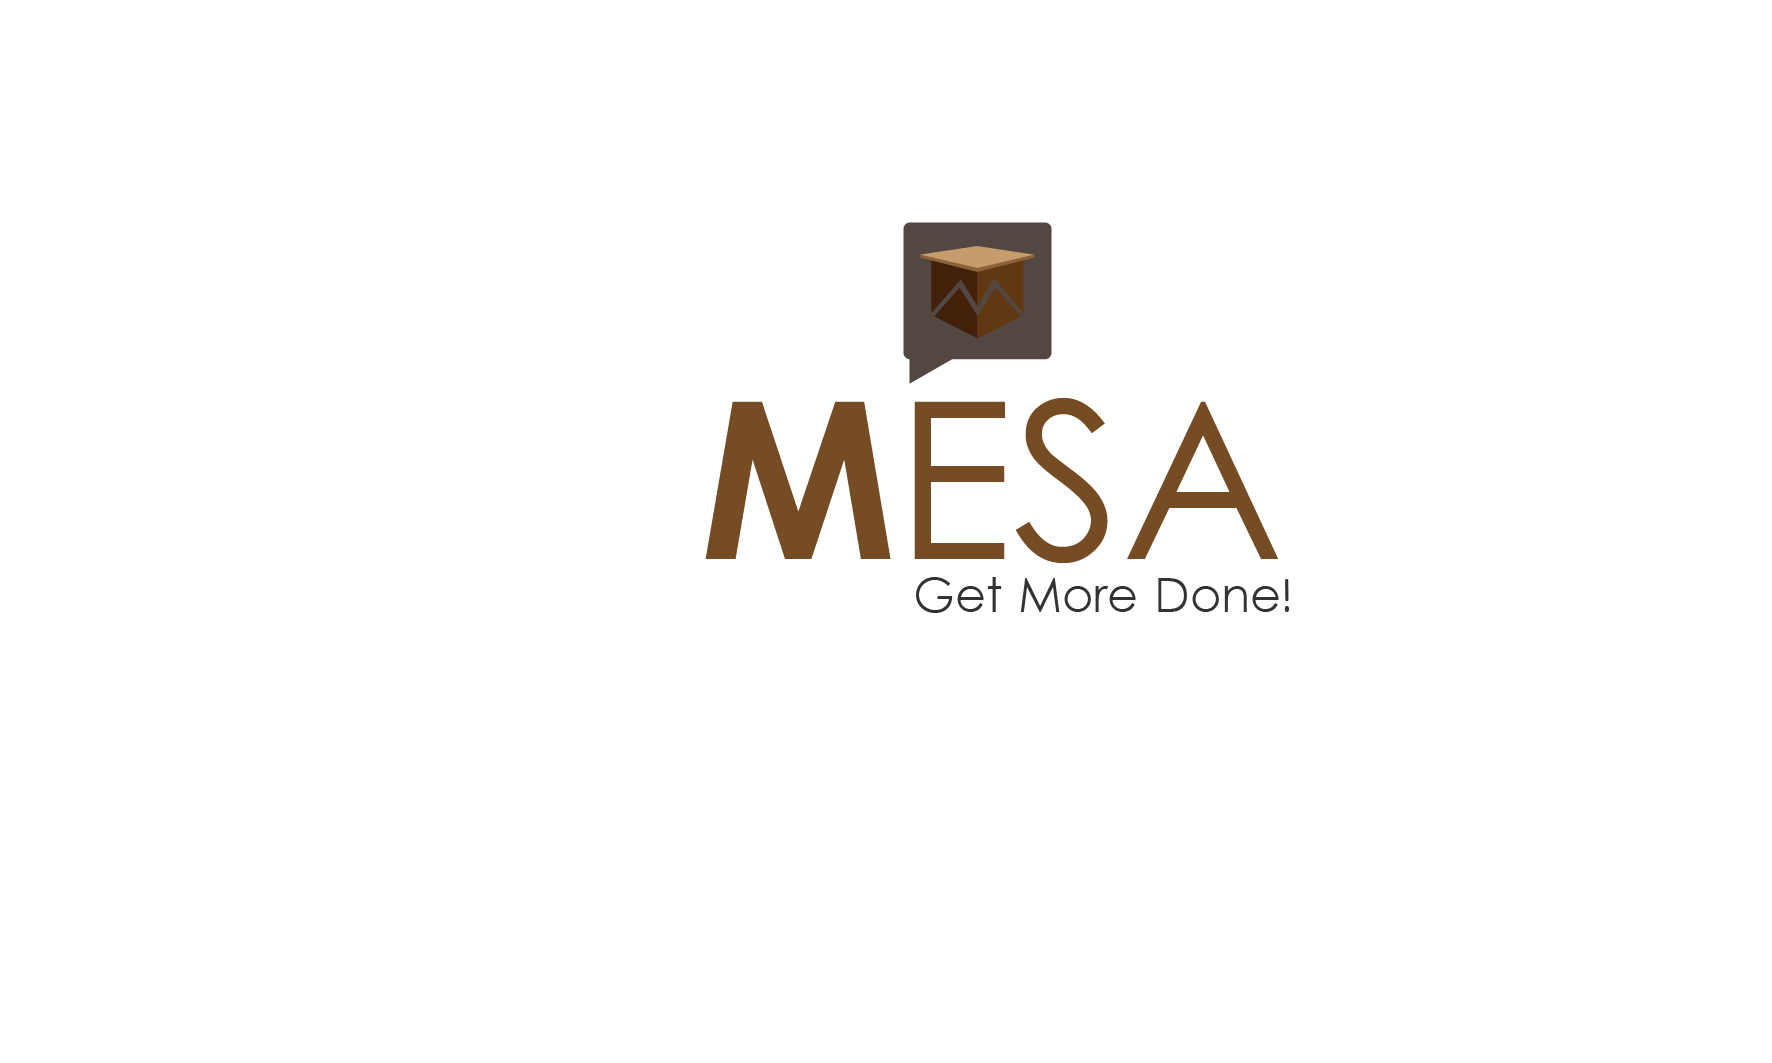 Logo Design by 3draw - Entry No. 149 in the Logo Design Contest Logo Design for Mesa.